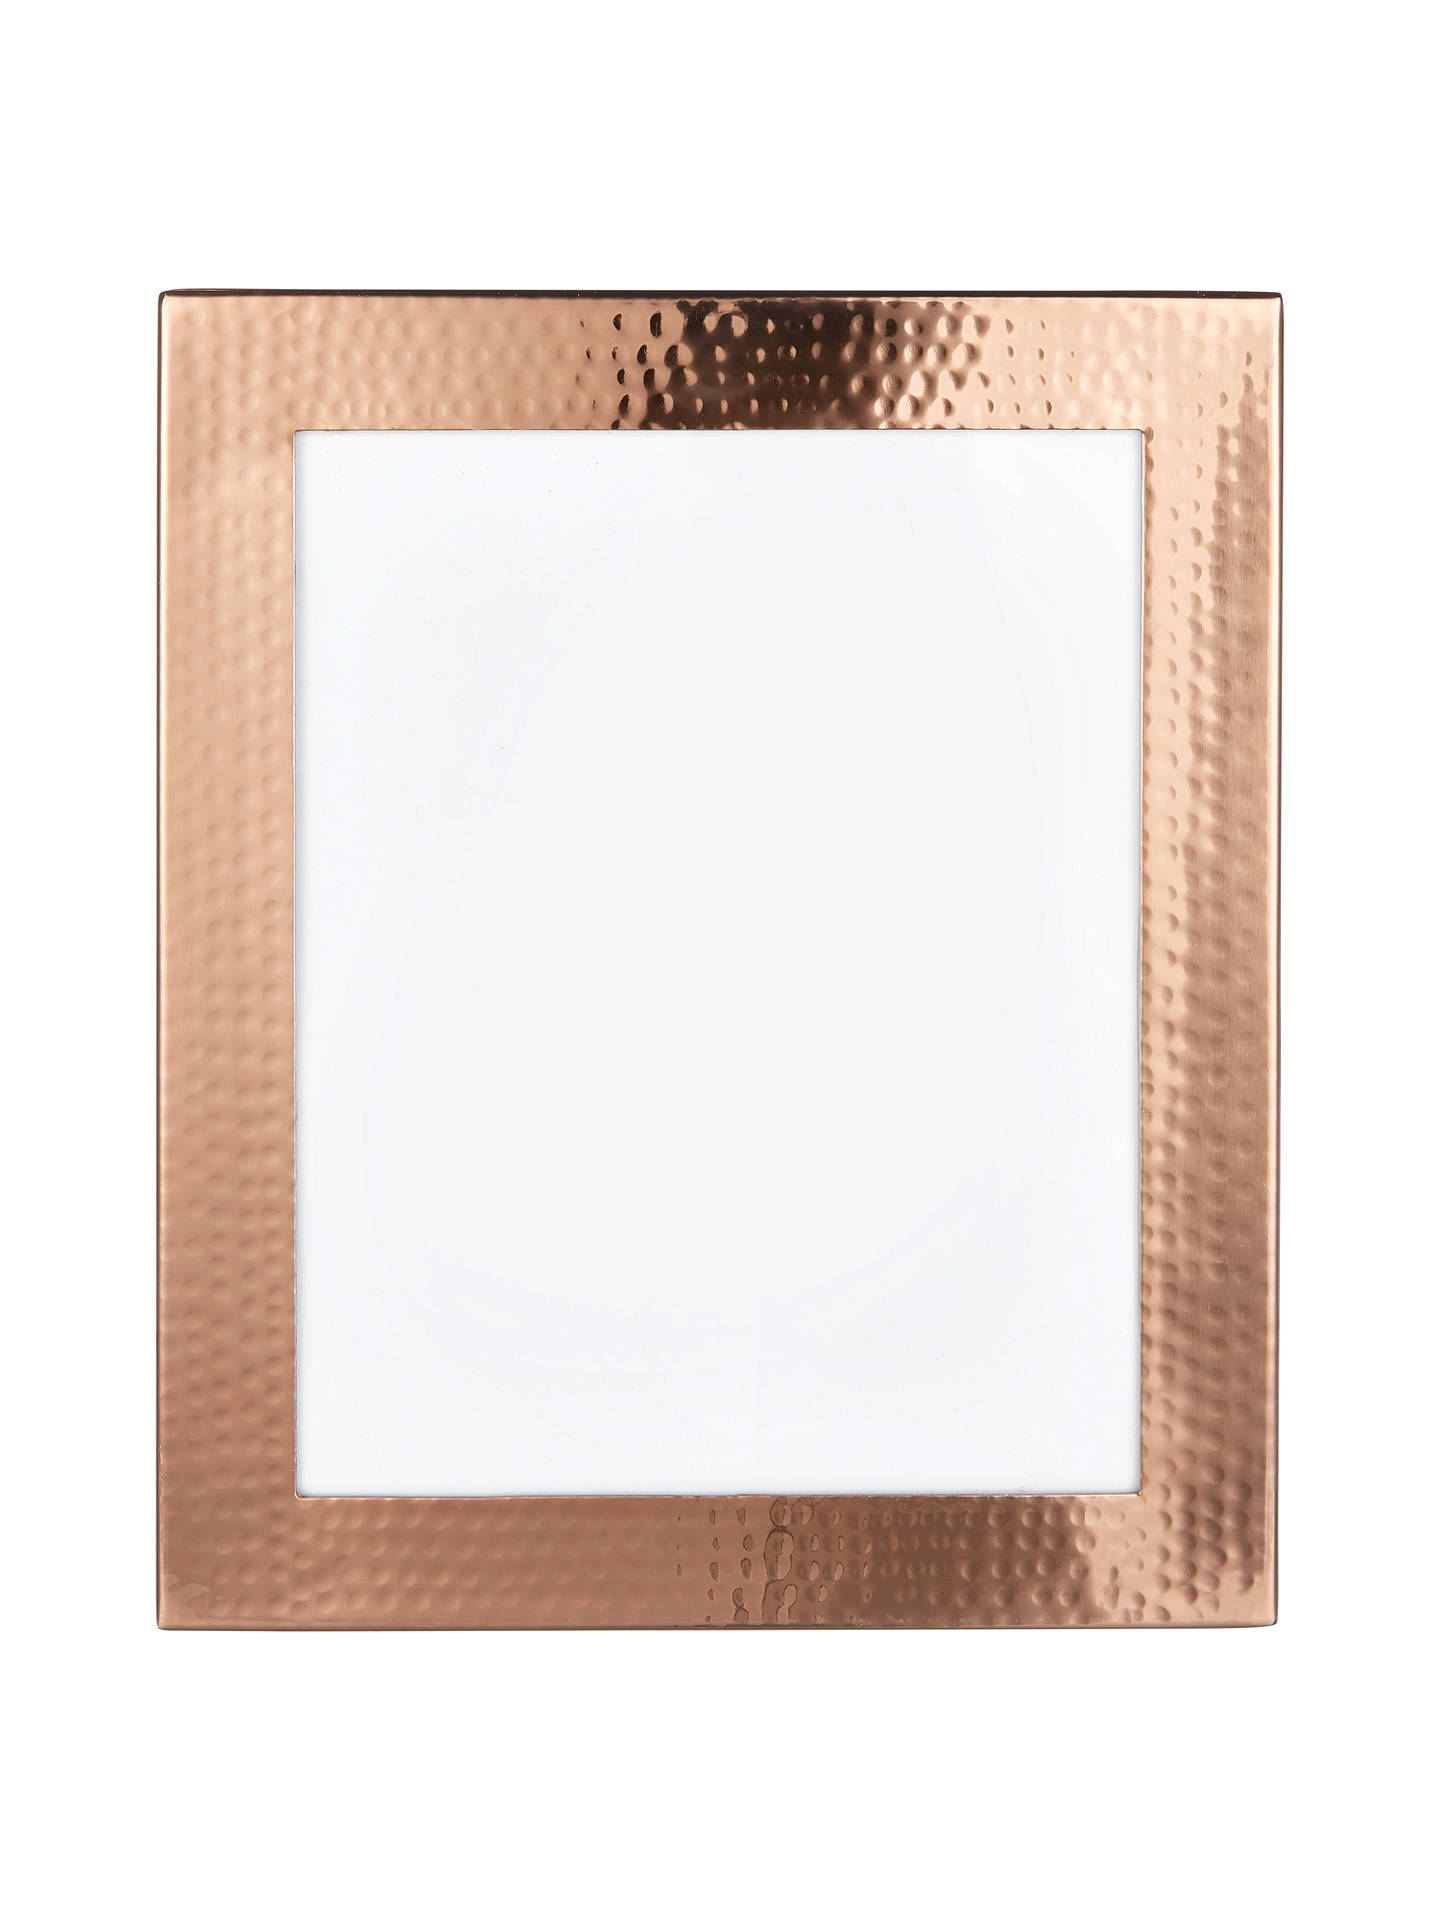 John Lewis Hammered Copper Photo Frame, 8 x 10\